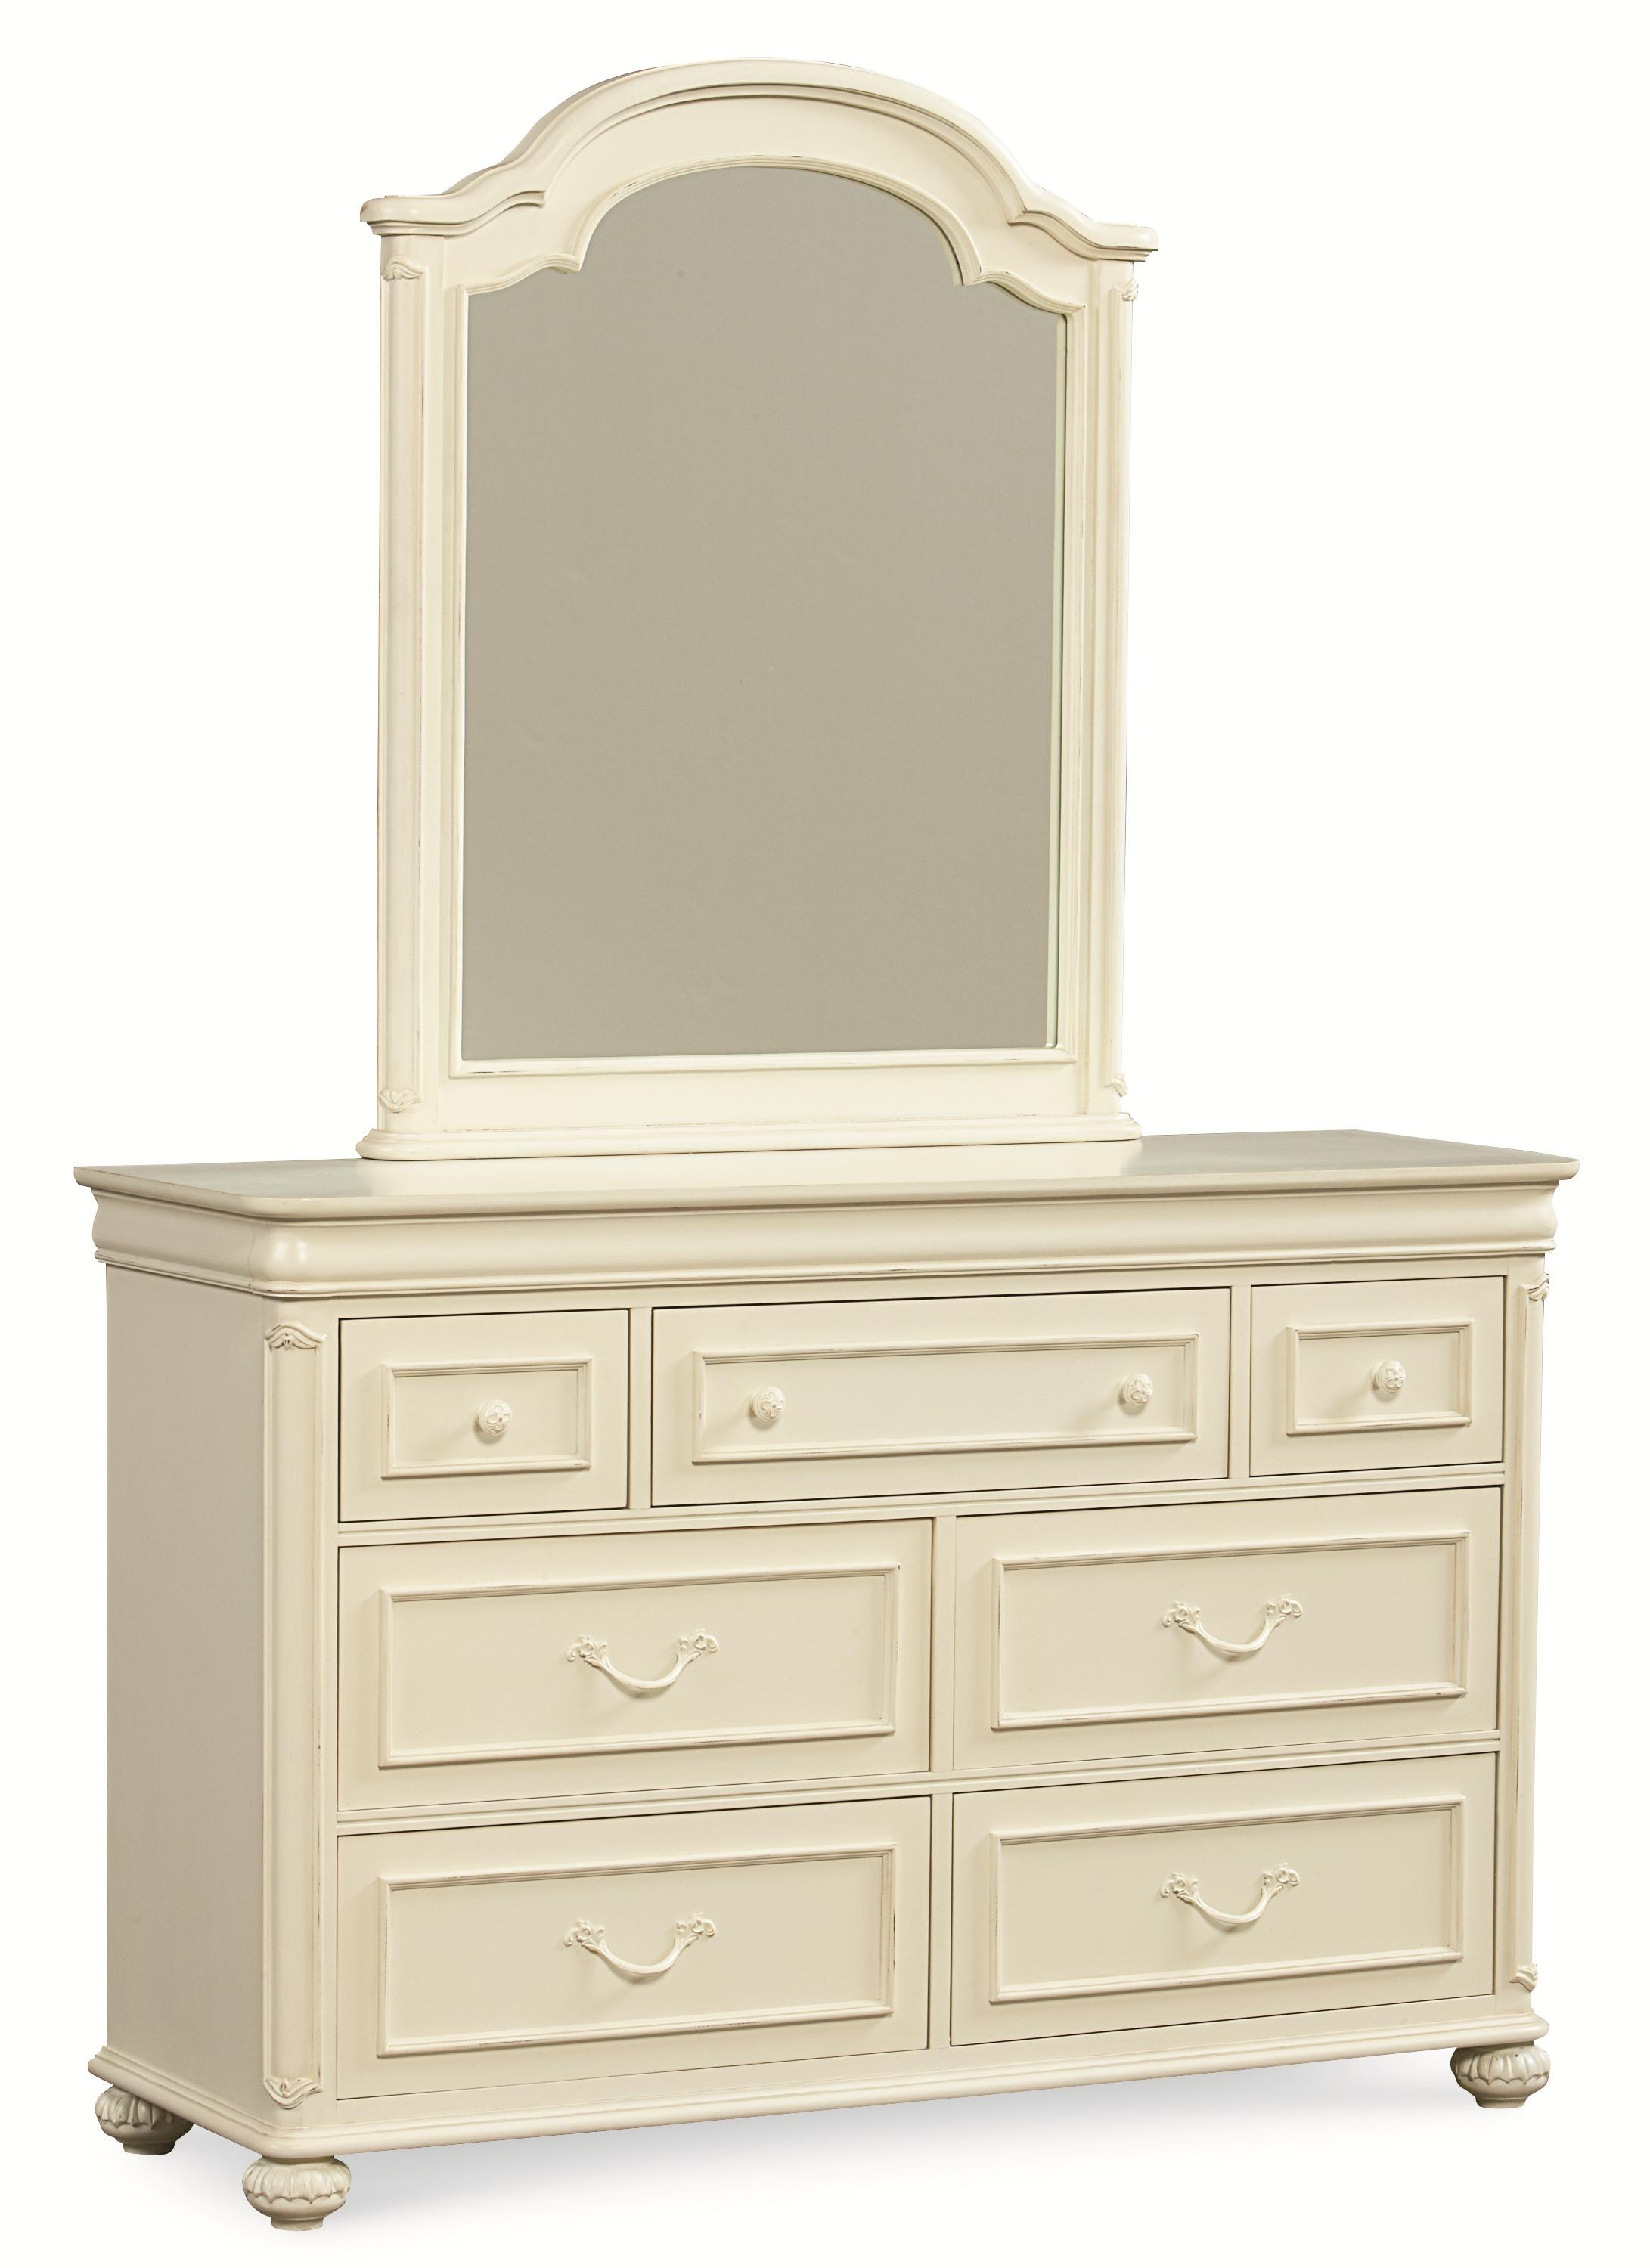 Legacy Classic Kids Charlotte Dresser and Mirror Set - Item Number: 3850-1100+0200